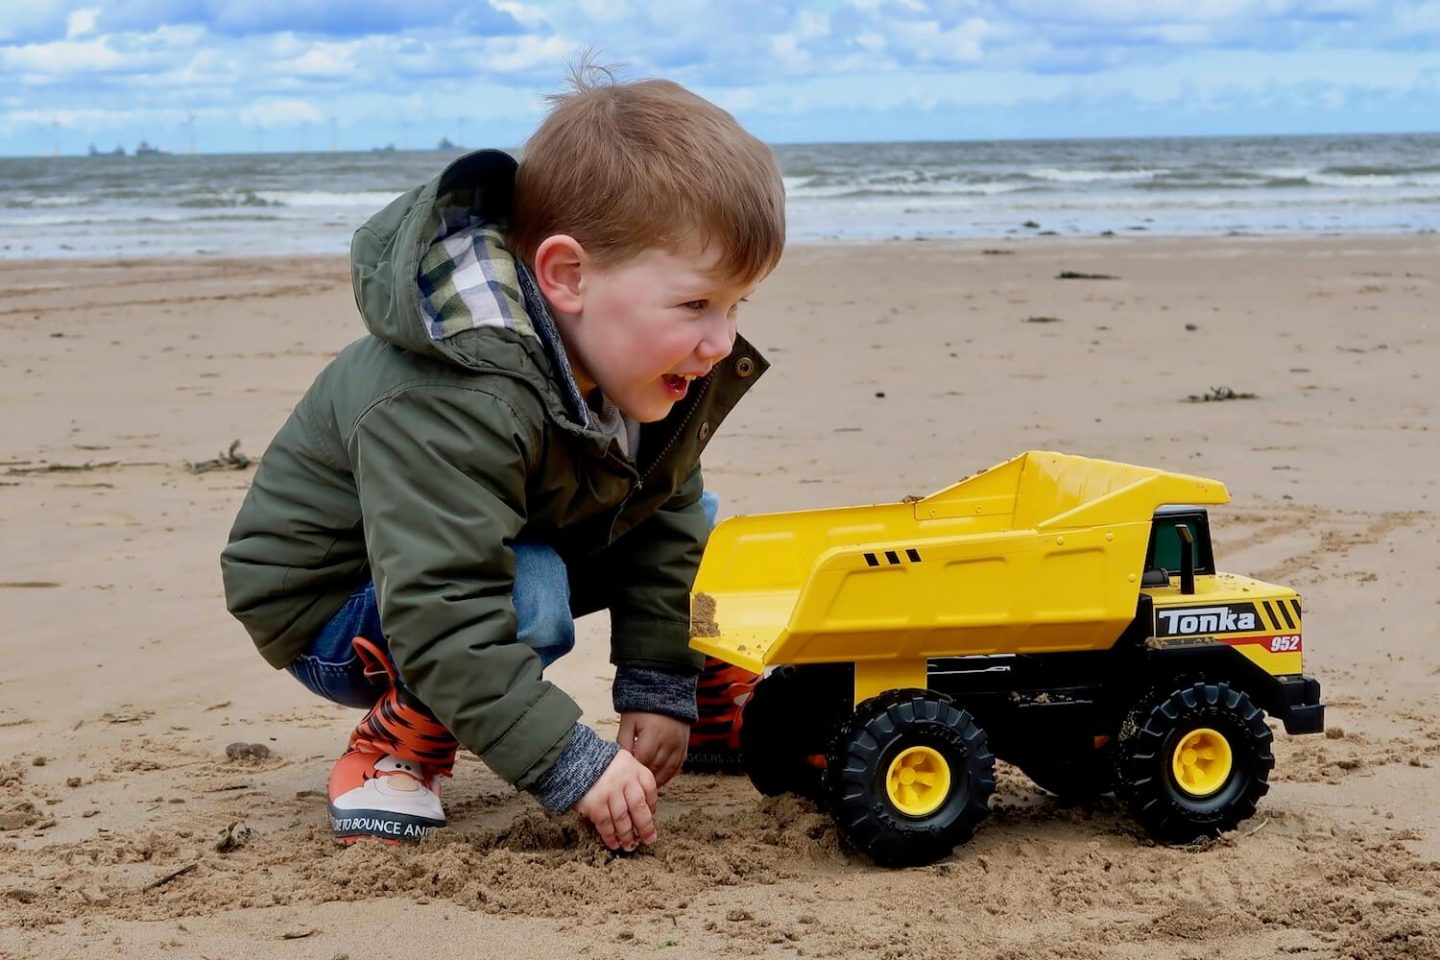 A child crouching next to a yellow toy dump truck on the beach.